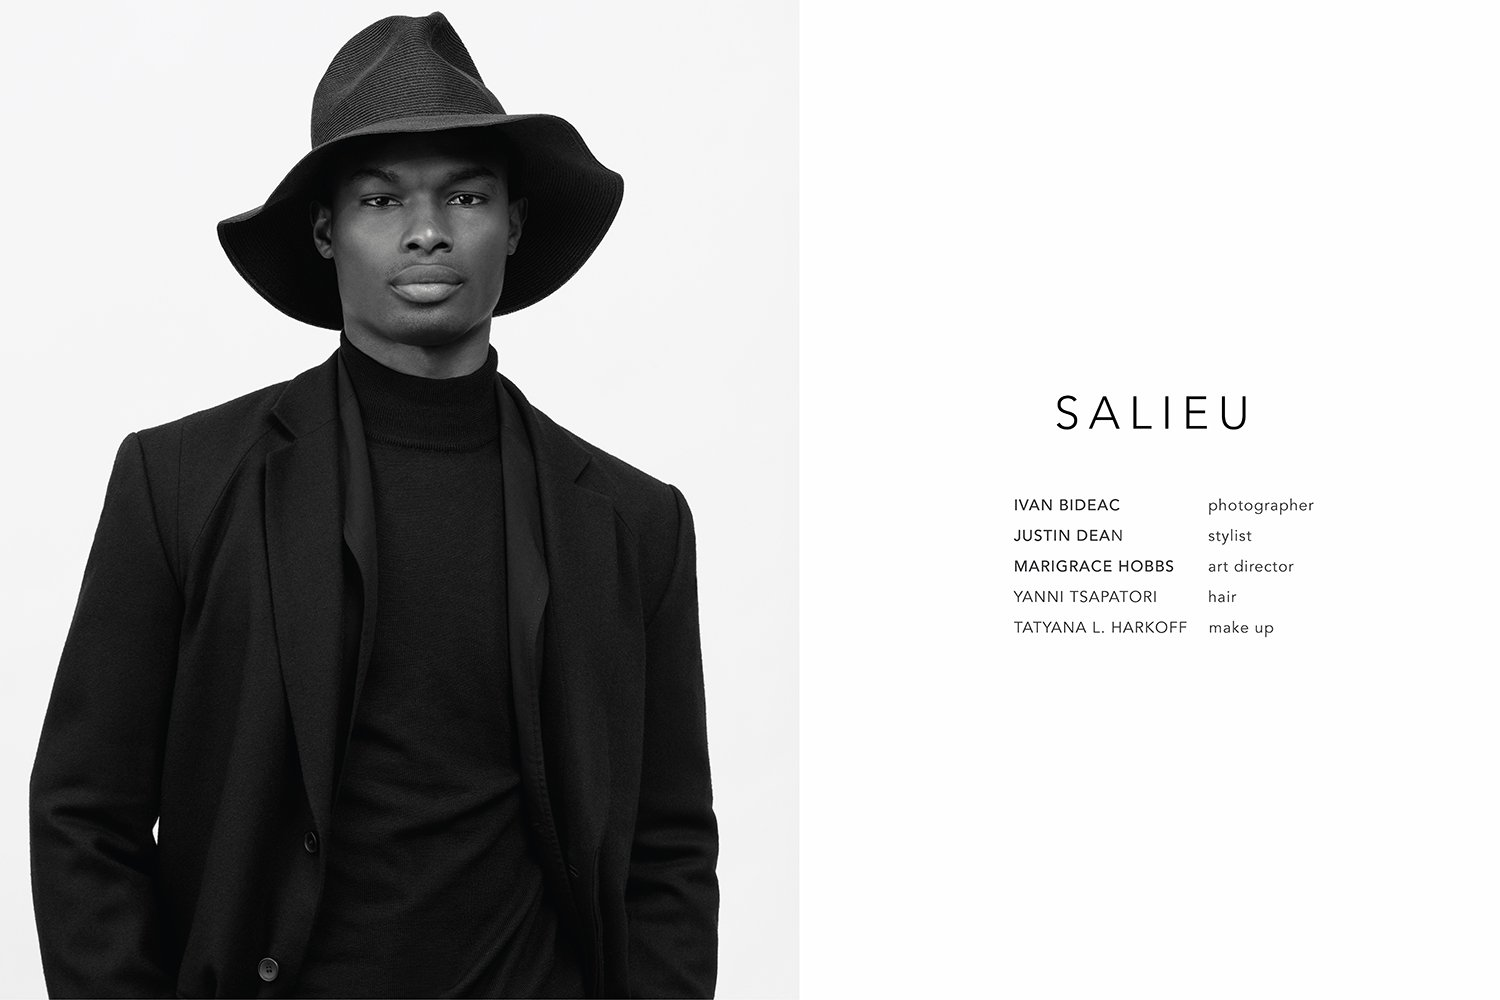 GENTRY-SALIEU-JALLOH-BY-IVAN-BIDEAC-ROBERT-GELLER-CDG-ENGINEERED-GARMENT-PAA-OLIVERS-PEOPLE-OBALLOU-001-FASHION-STYLE.jpg